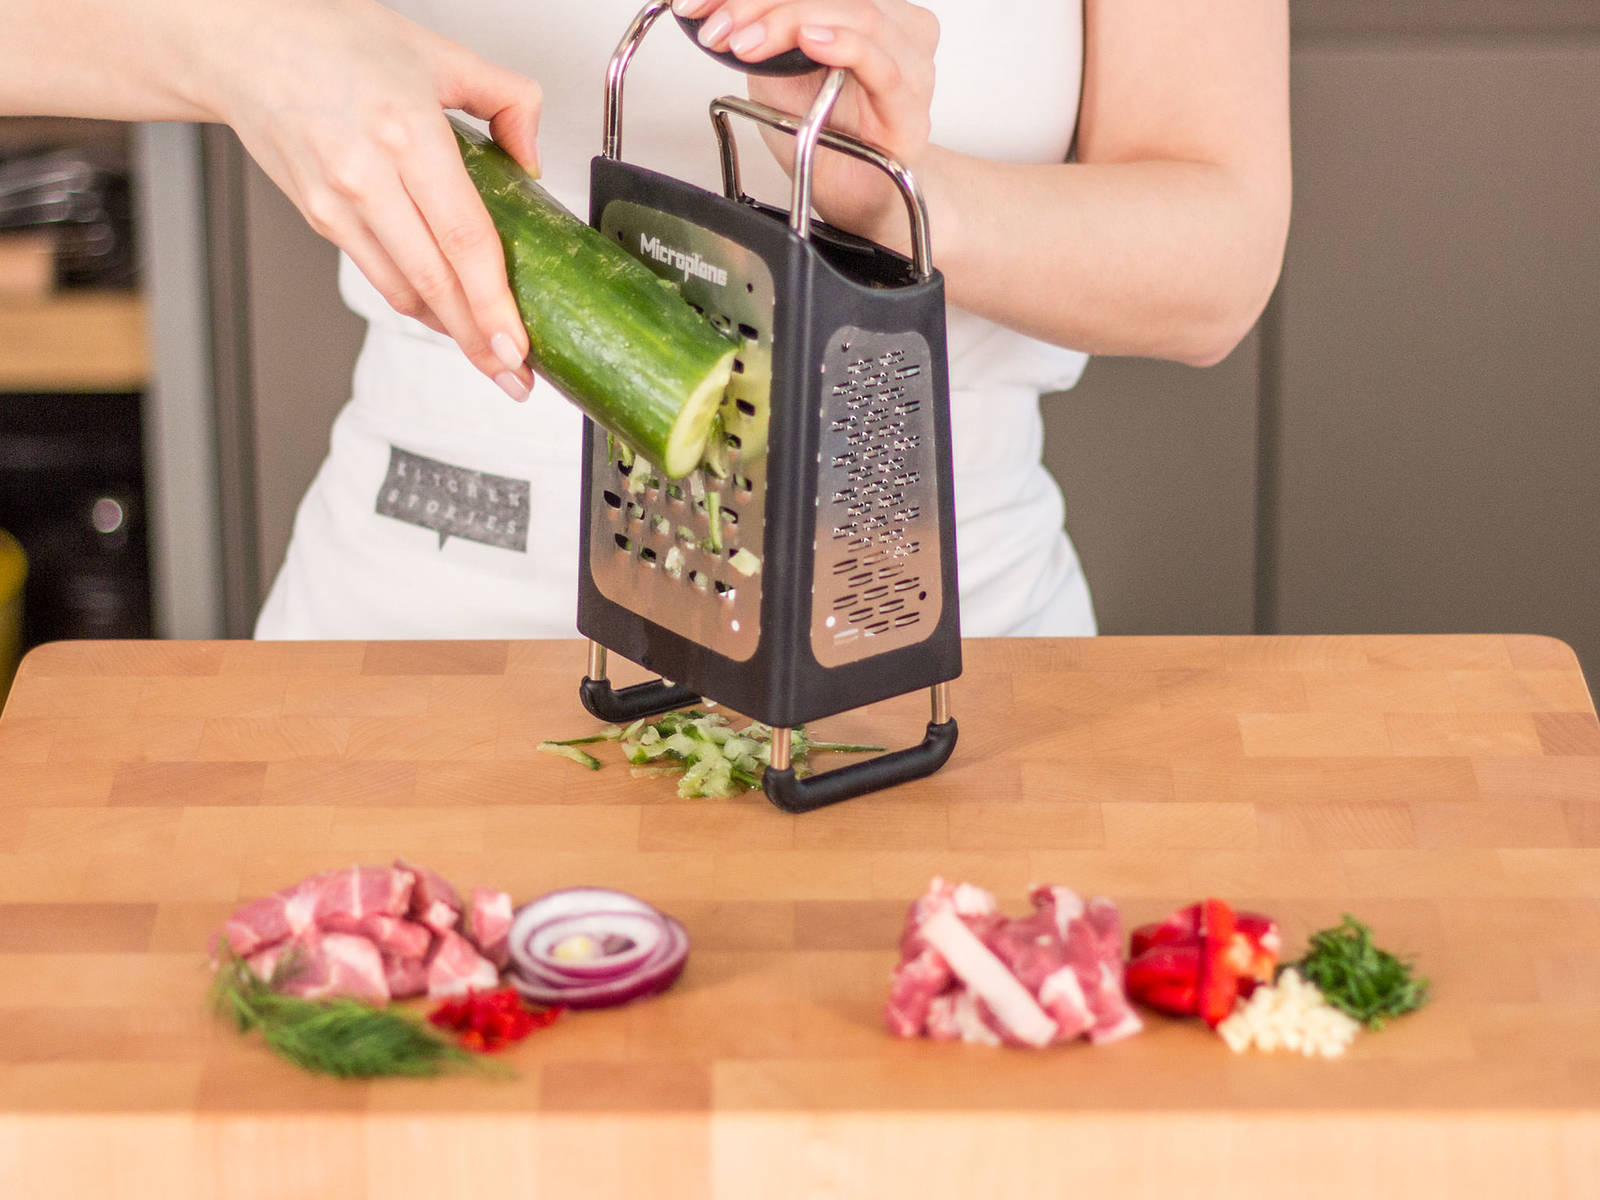 Cut meat into thin strips and onions into fine rings. Finely dice garlic and chili. Cut bell pepper into strips. Roughly chop parsley and dill. Coarsely grate cucumber using large holes of a box grater.